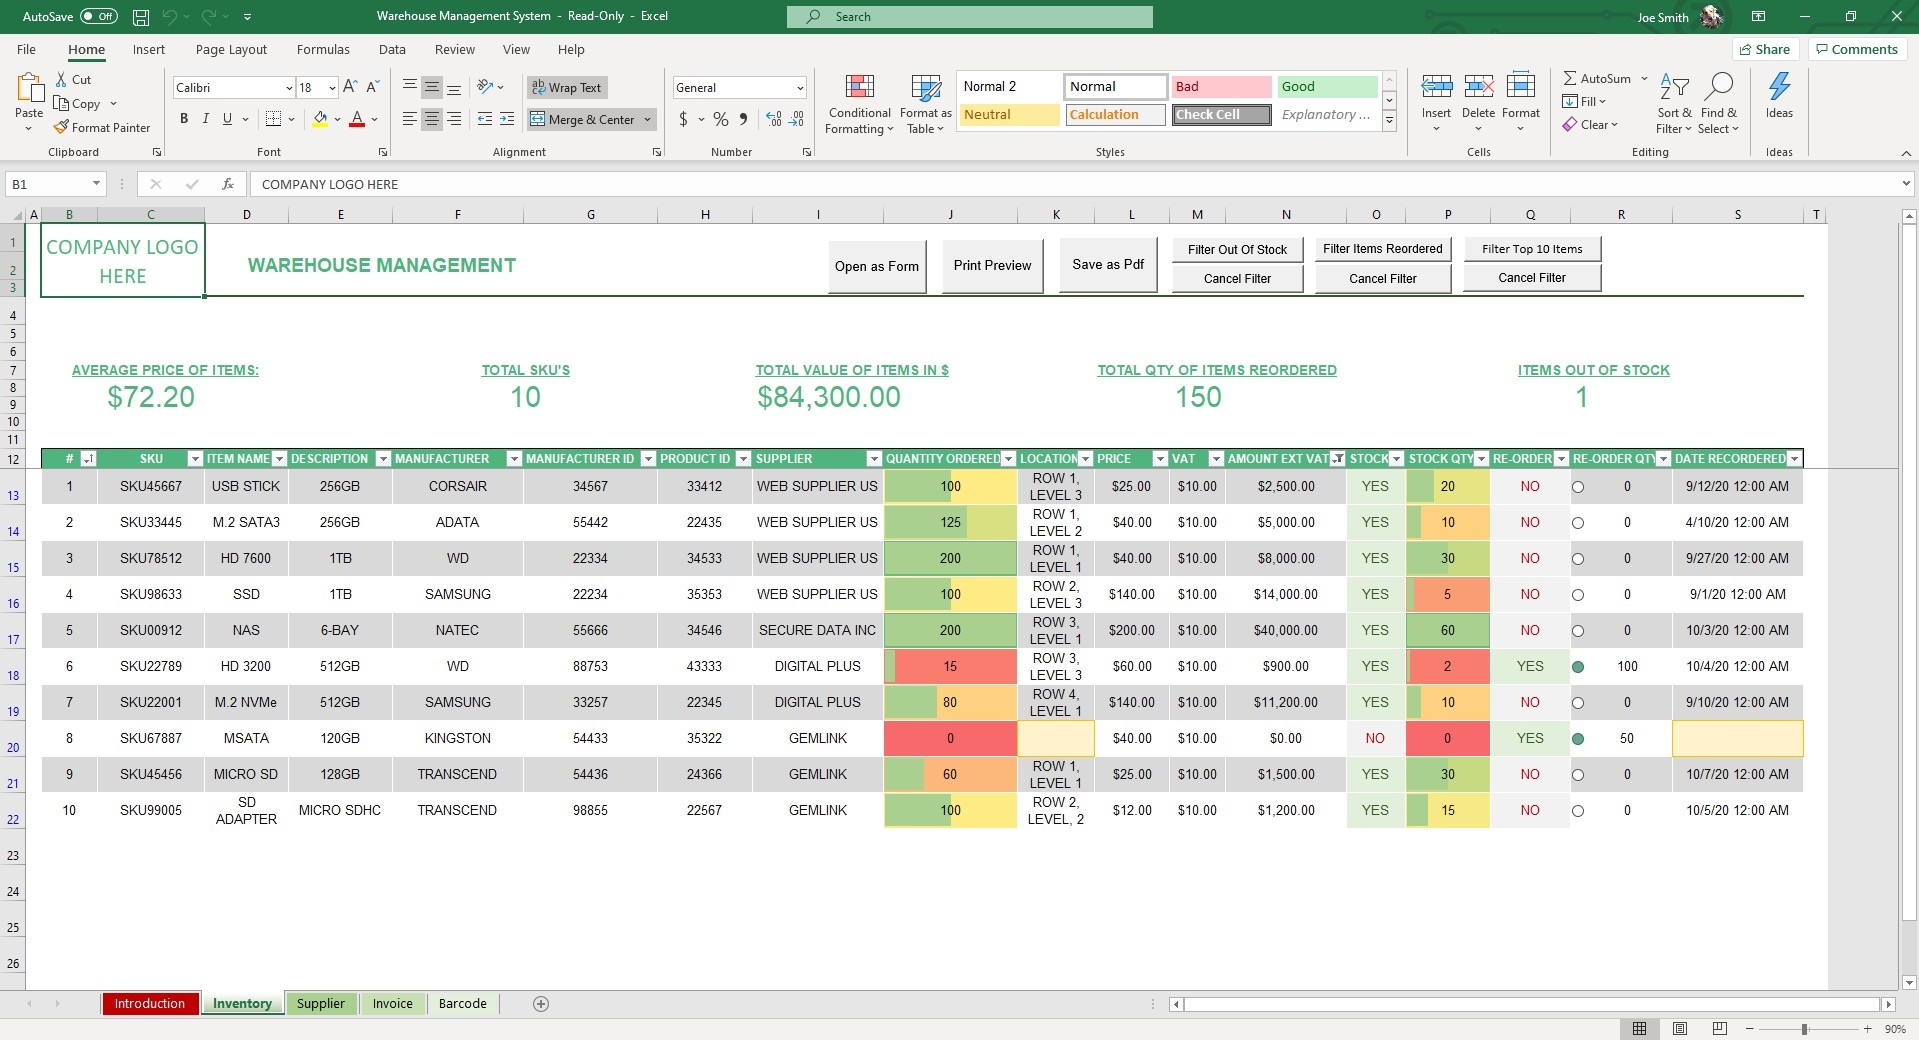 Full Size of Warehouse Management System Excel Template Simple Sheets Inventory Stock Control Spreadsheet